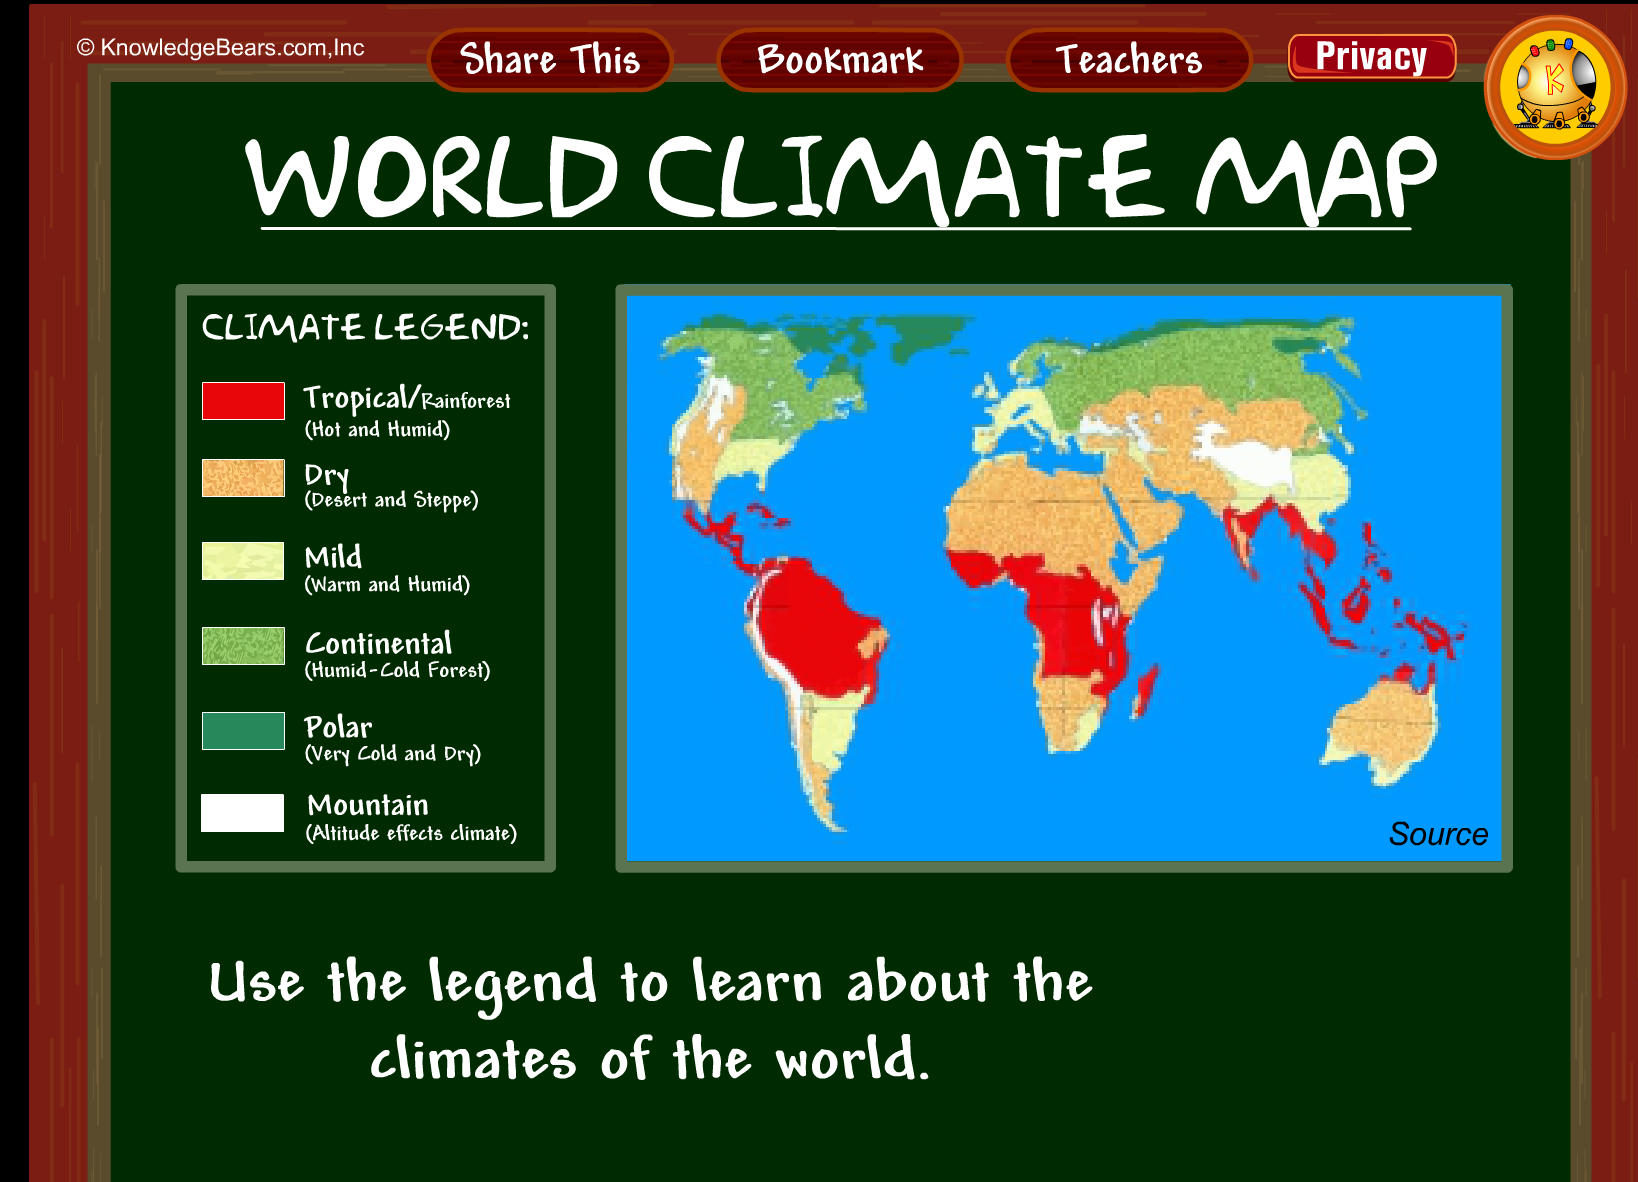 World climate map httpkbearsclimatesml geography world climate map httpkbearsclimatesml gumiabroncs Image collections